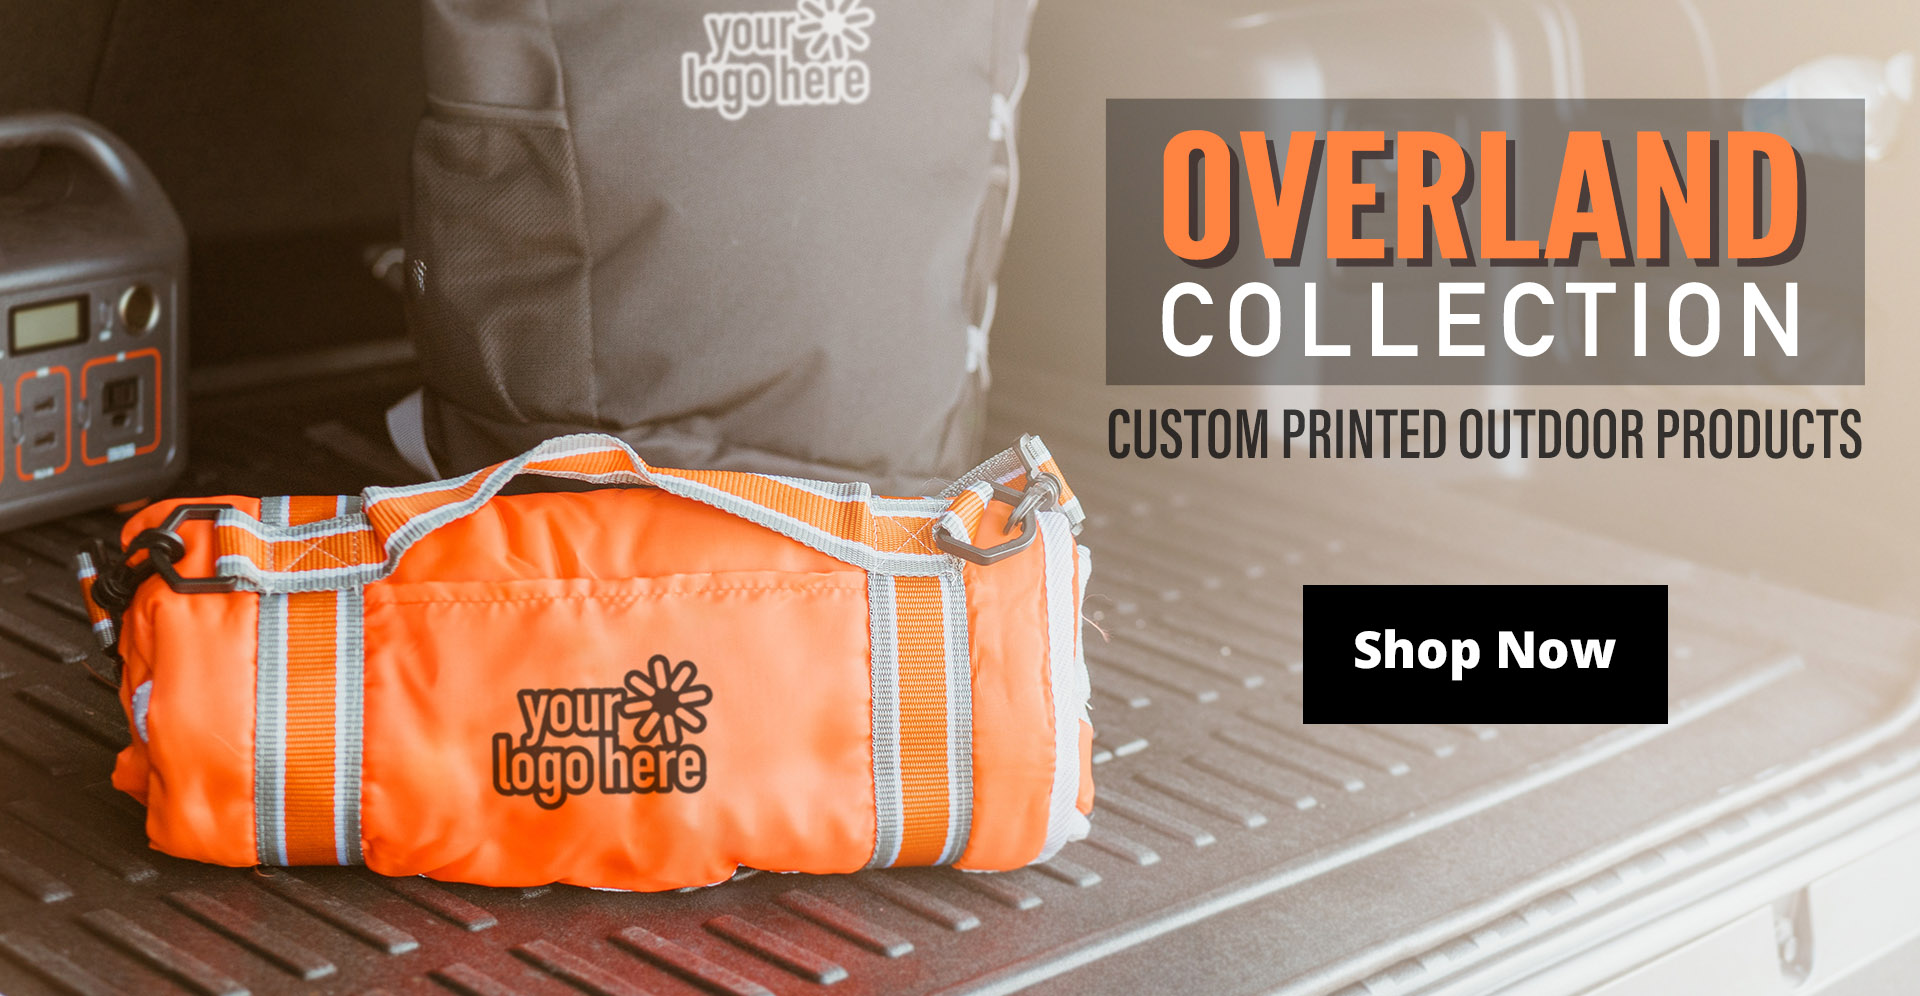 overland collection